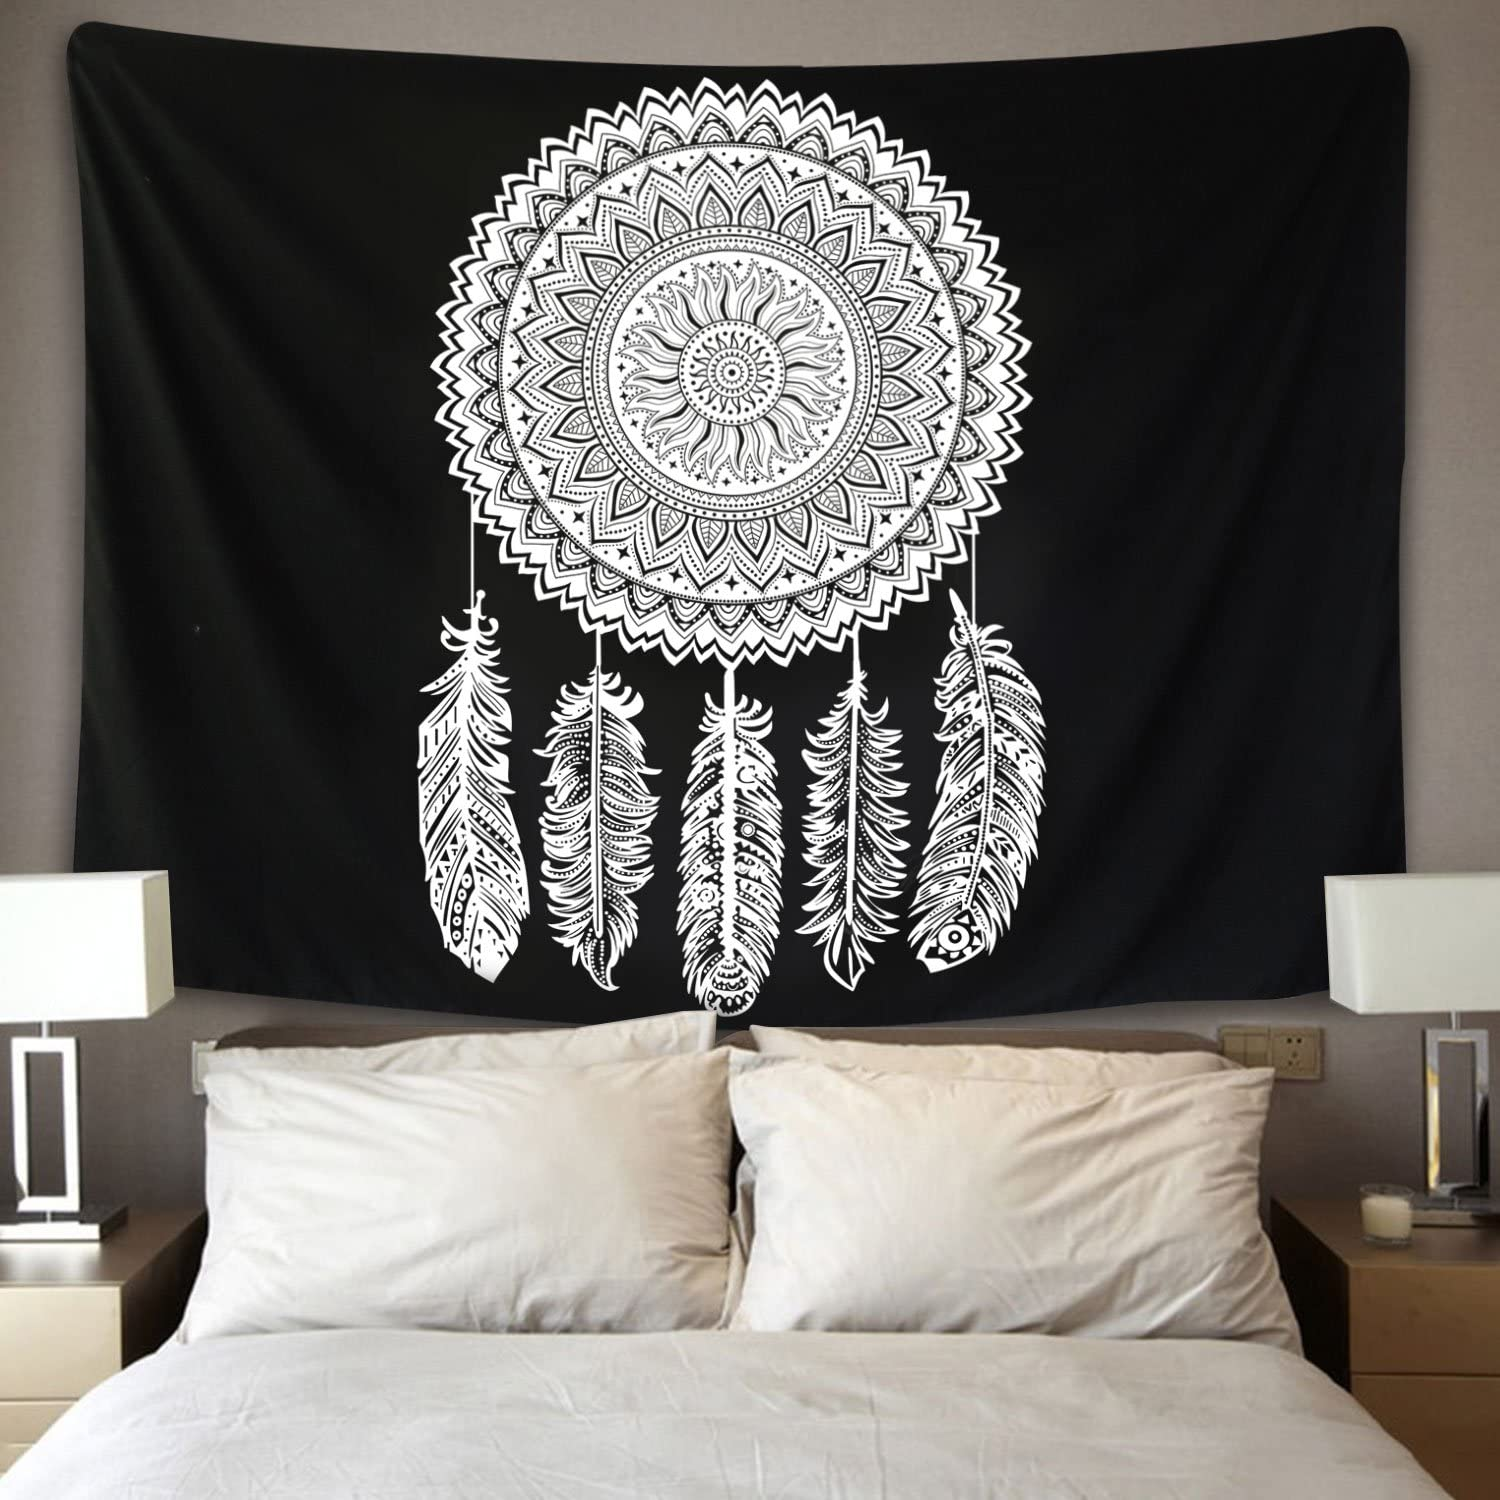 Dreamcatcher Tapestry Black White Mandala Tapestry Wall Hanging Flower Wall Tapestry Indian Bohemian Hippie Tapestry Wall Art for Living Room Bedroom Dorm Decor